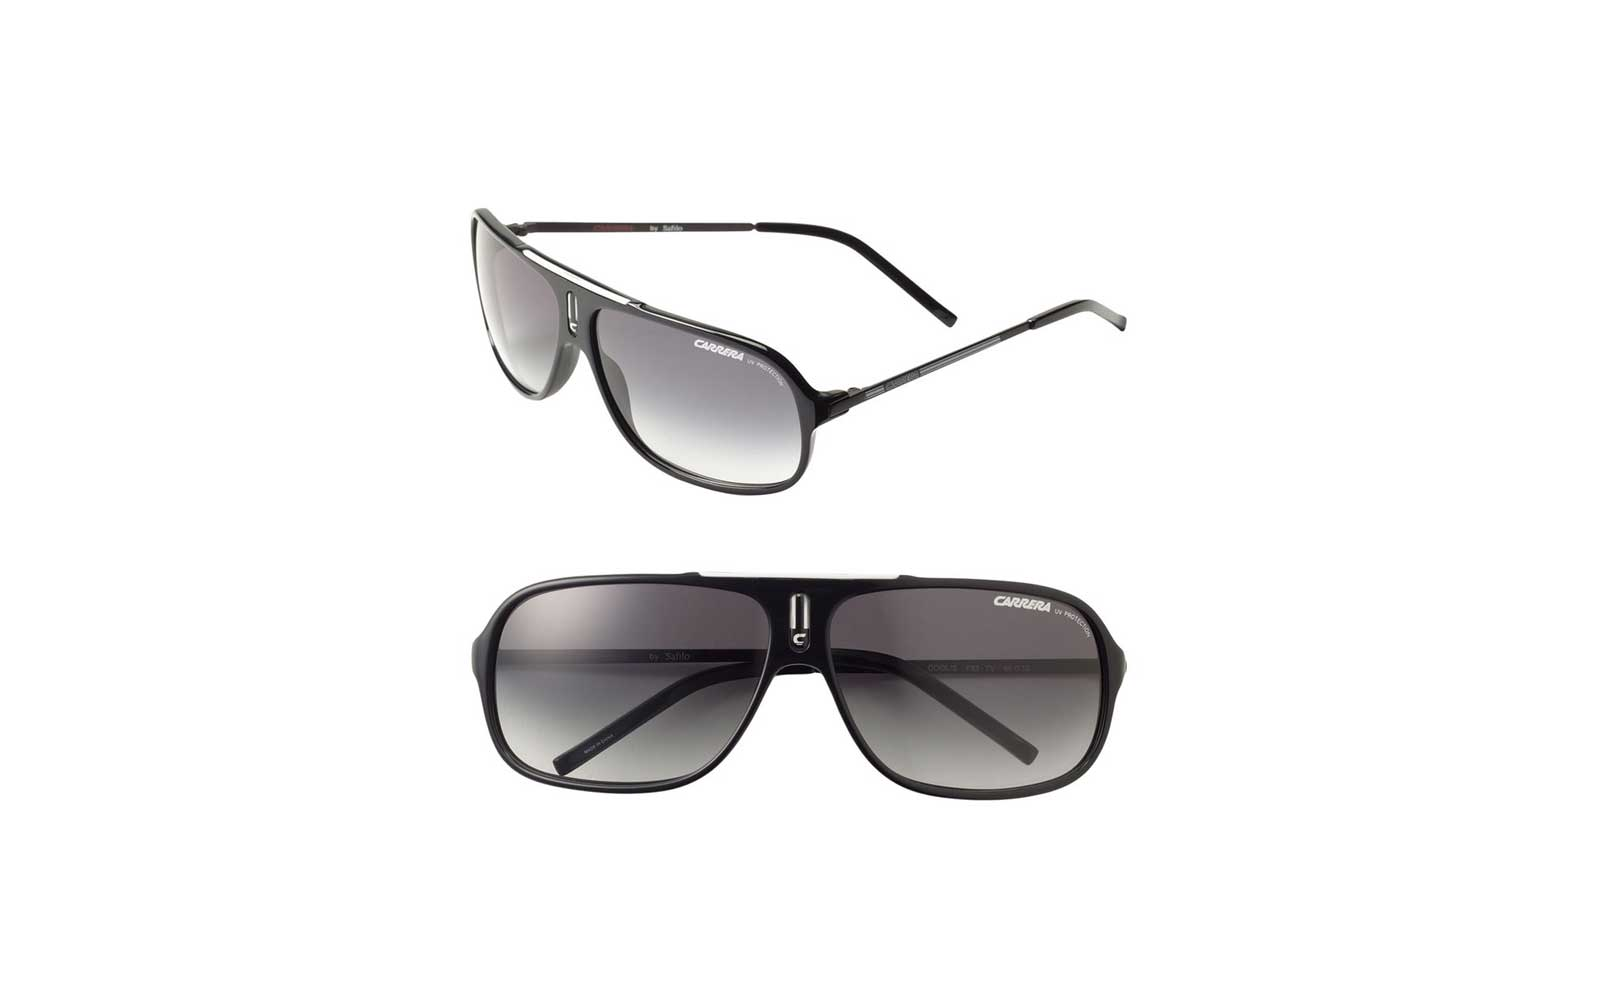 Carrera Eyewear 'Cool' Sunglasses